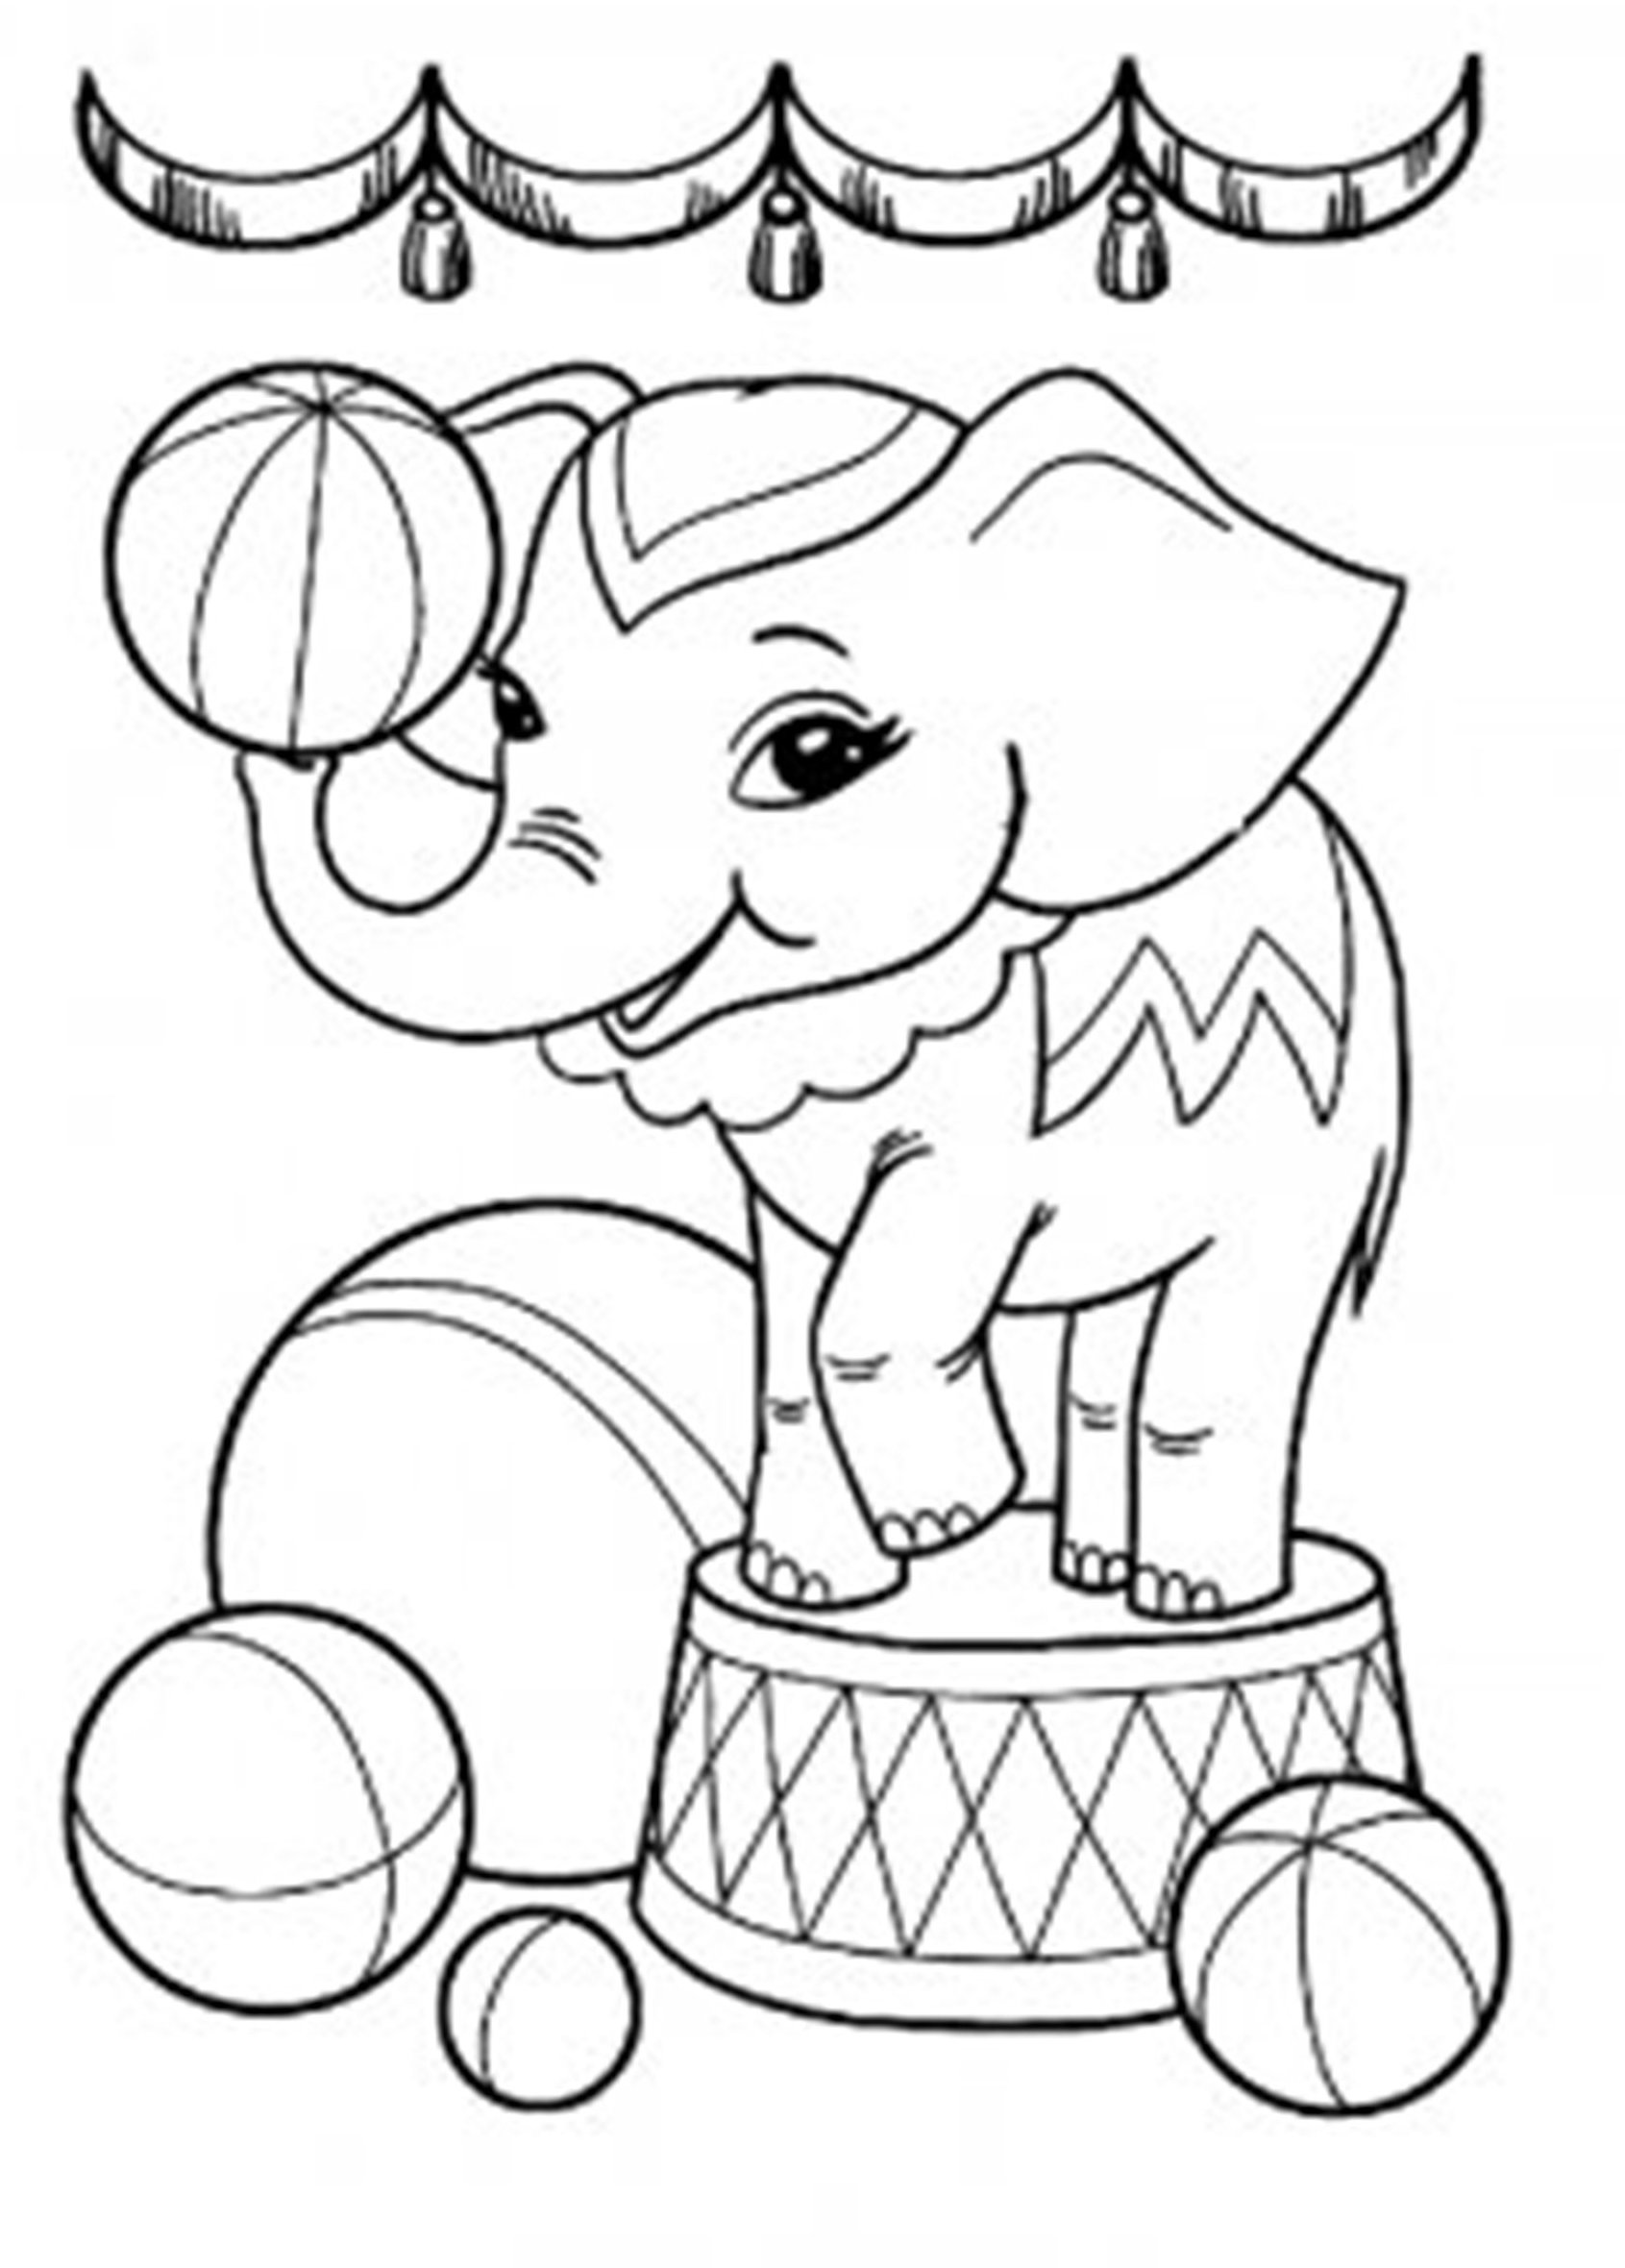 simple elephant coloring page elephant coloring pages for kids preschool and kindergarten simple page coloring elephant